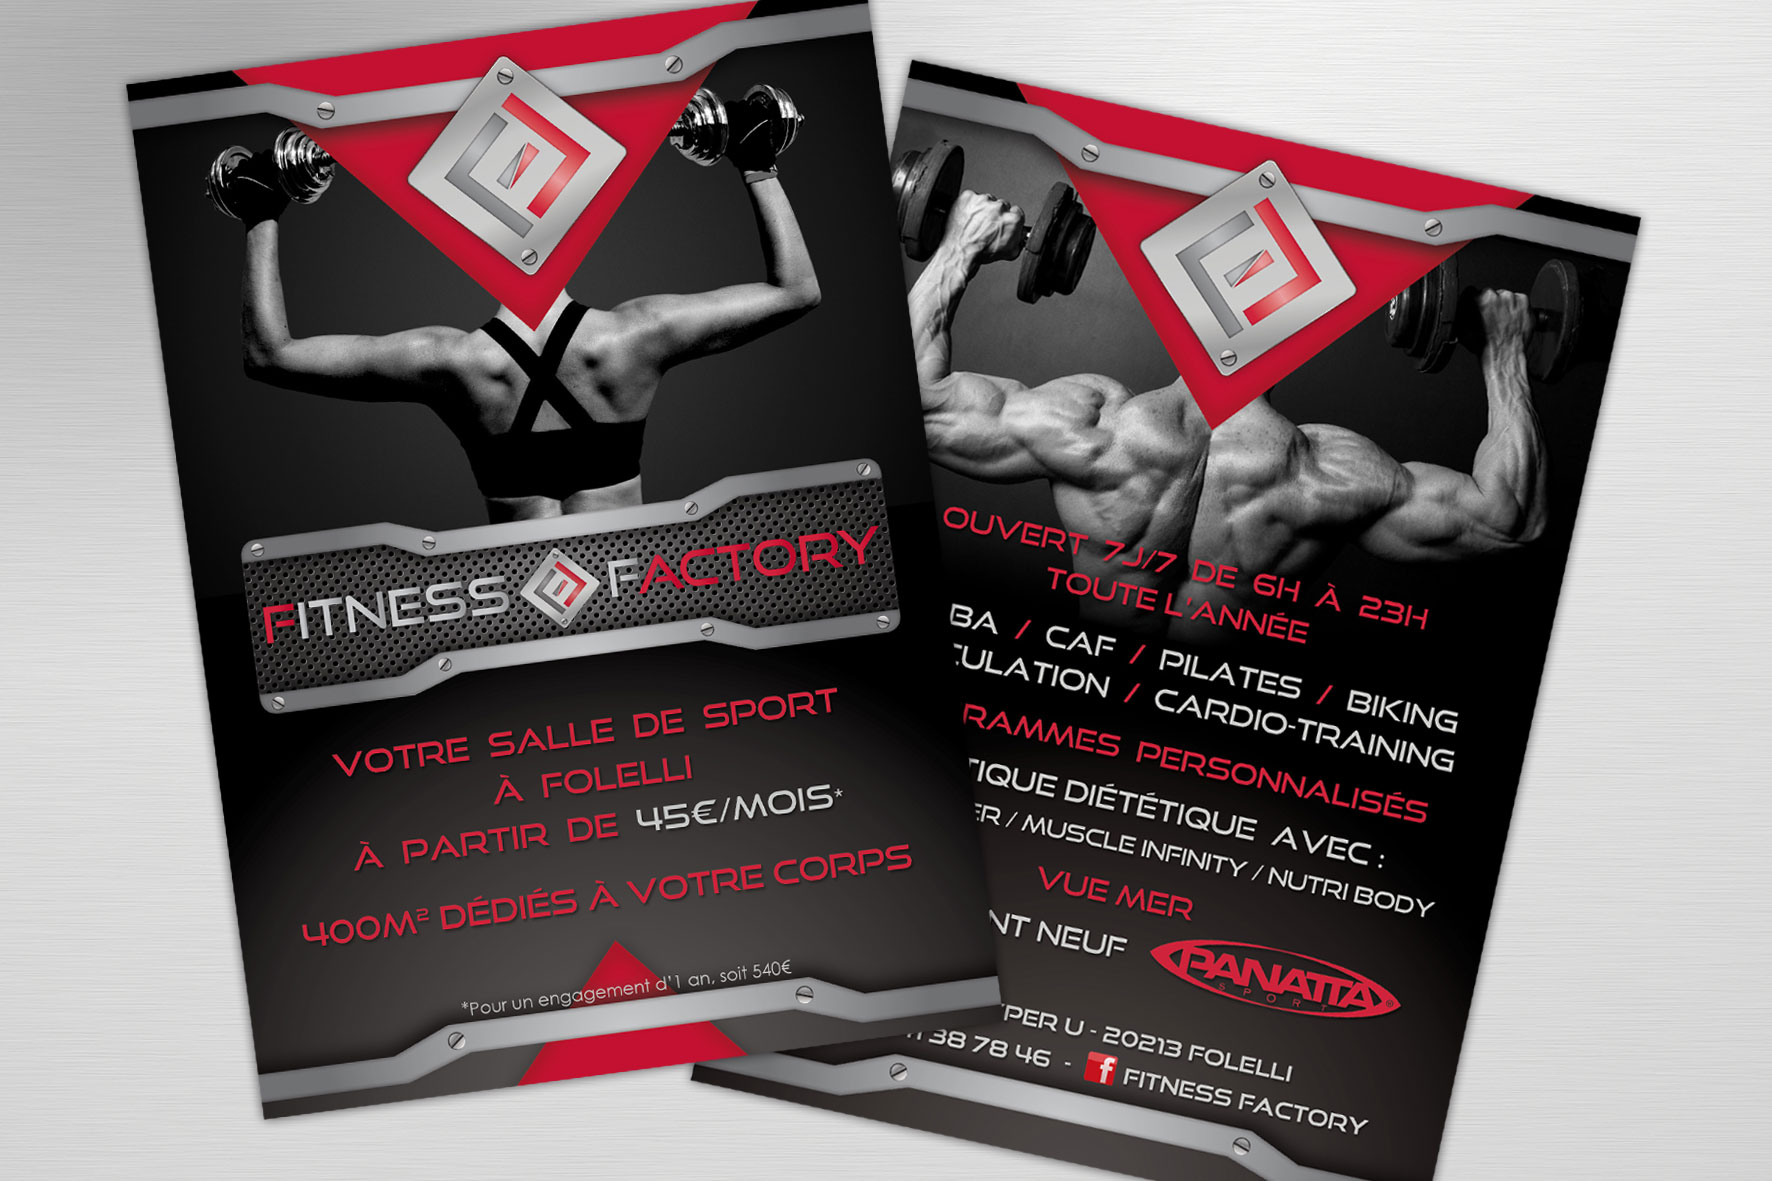 Fitness Factory - Folelli